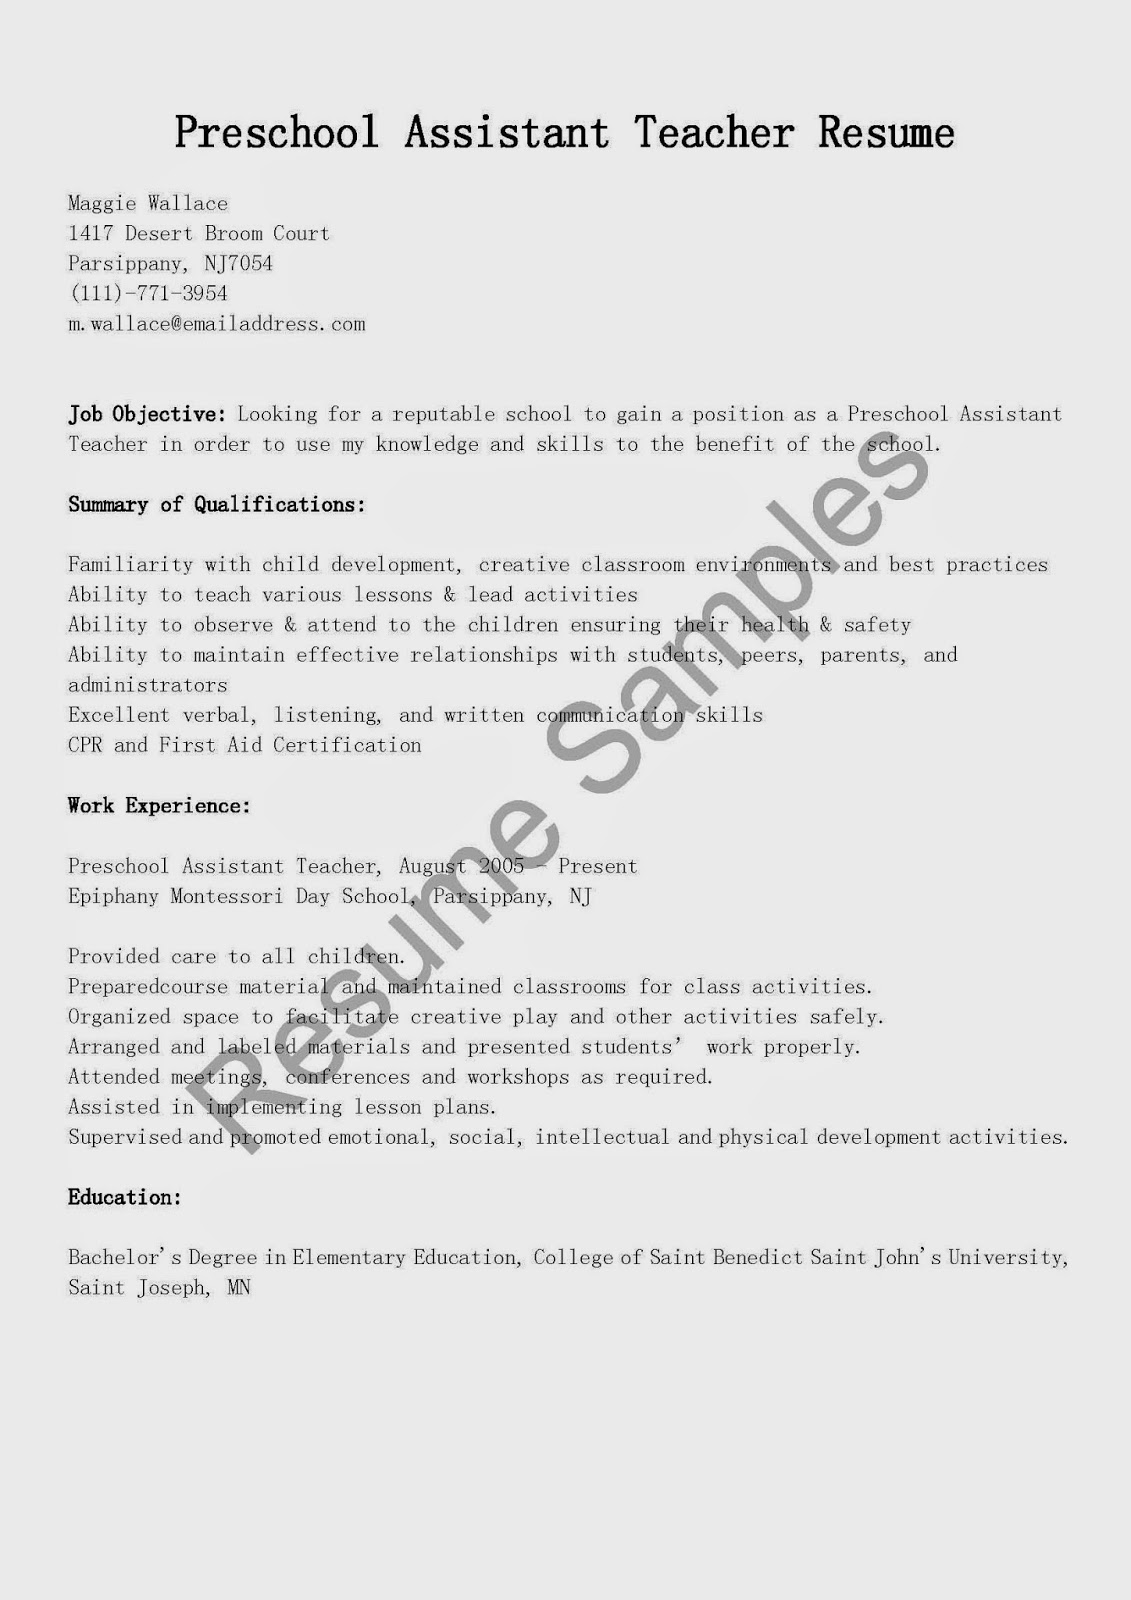 assistant preschool teacher resume 05052017